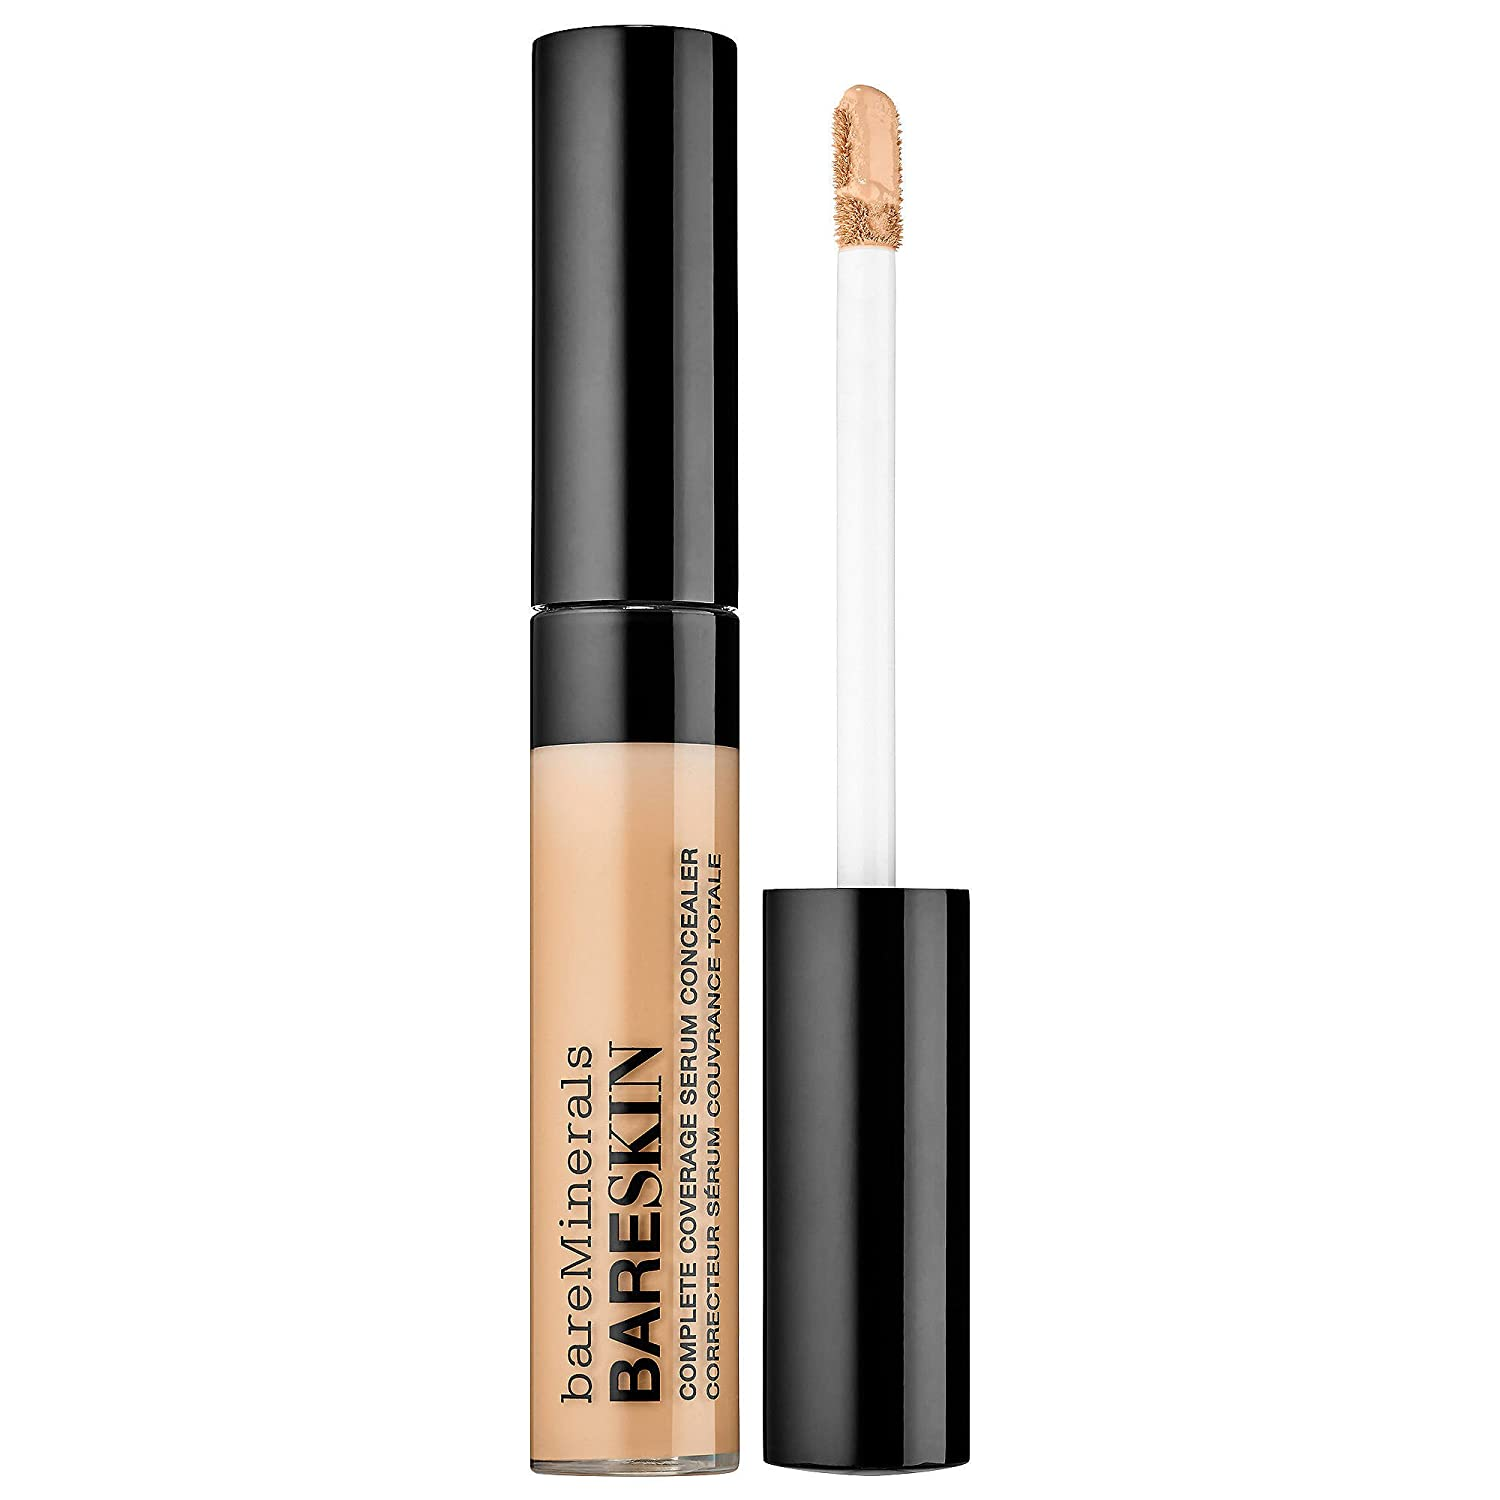 Bare Minerals Bareskin Concealer Light 0.2 oz